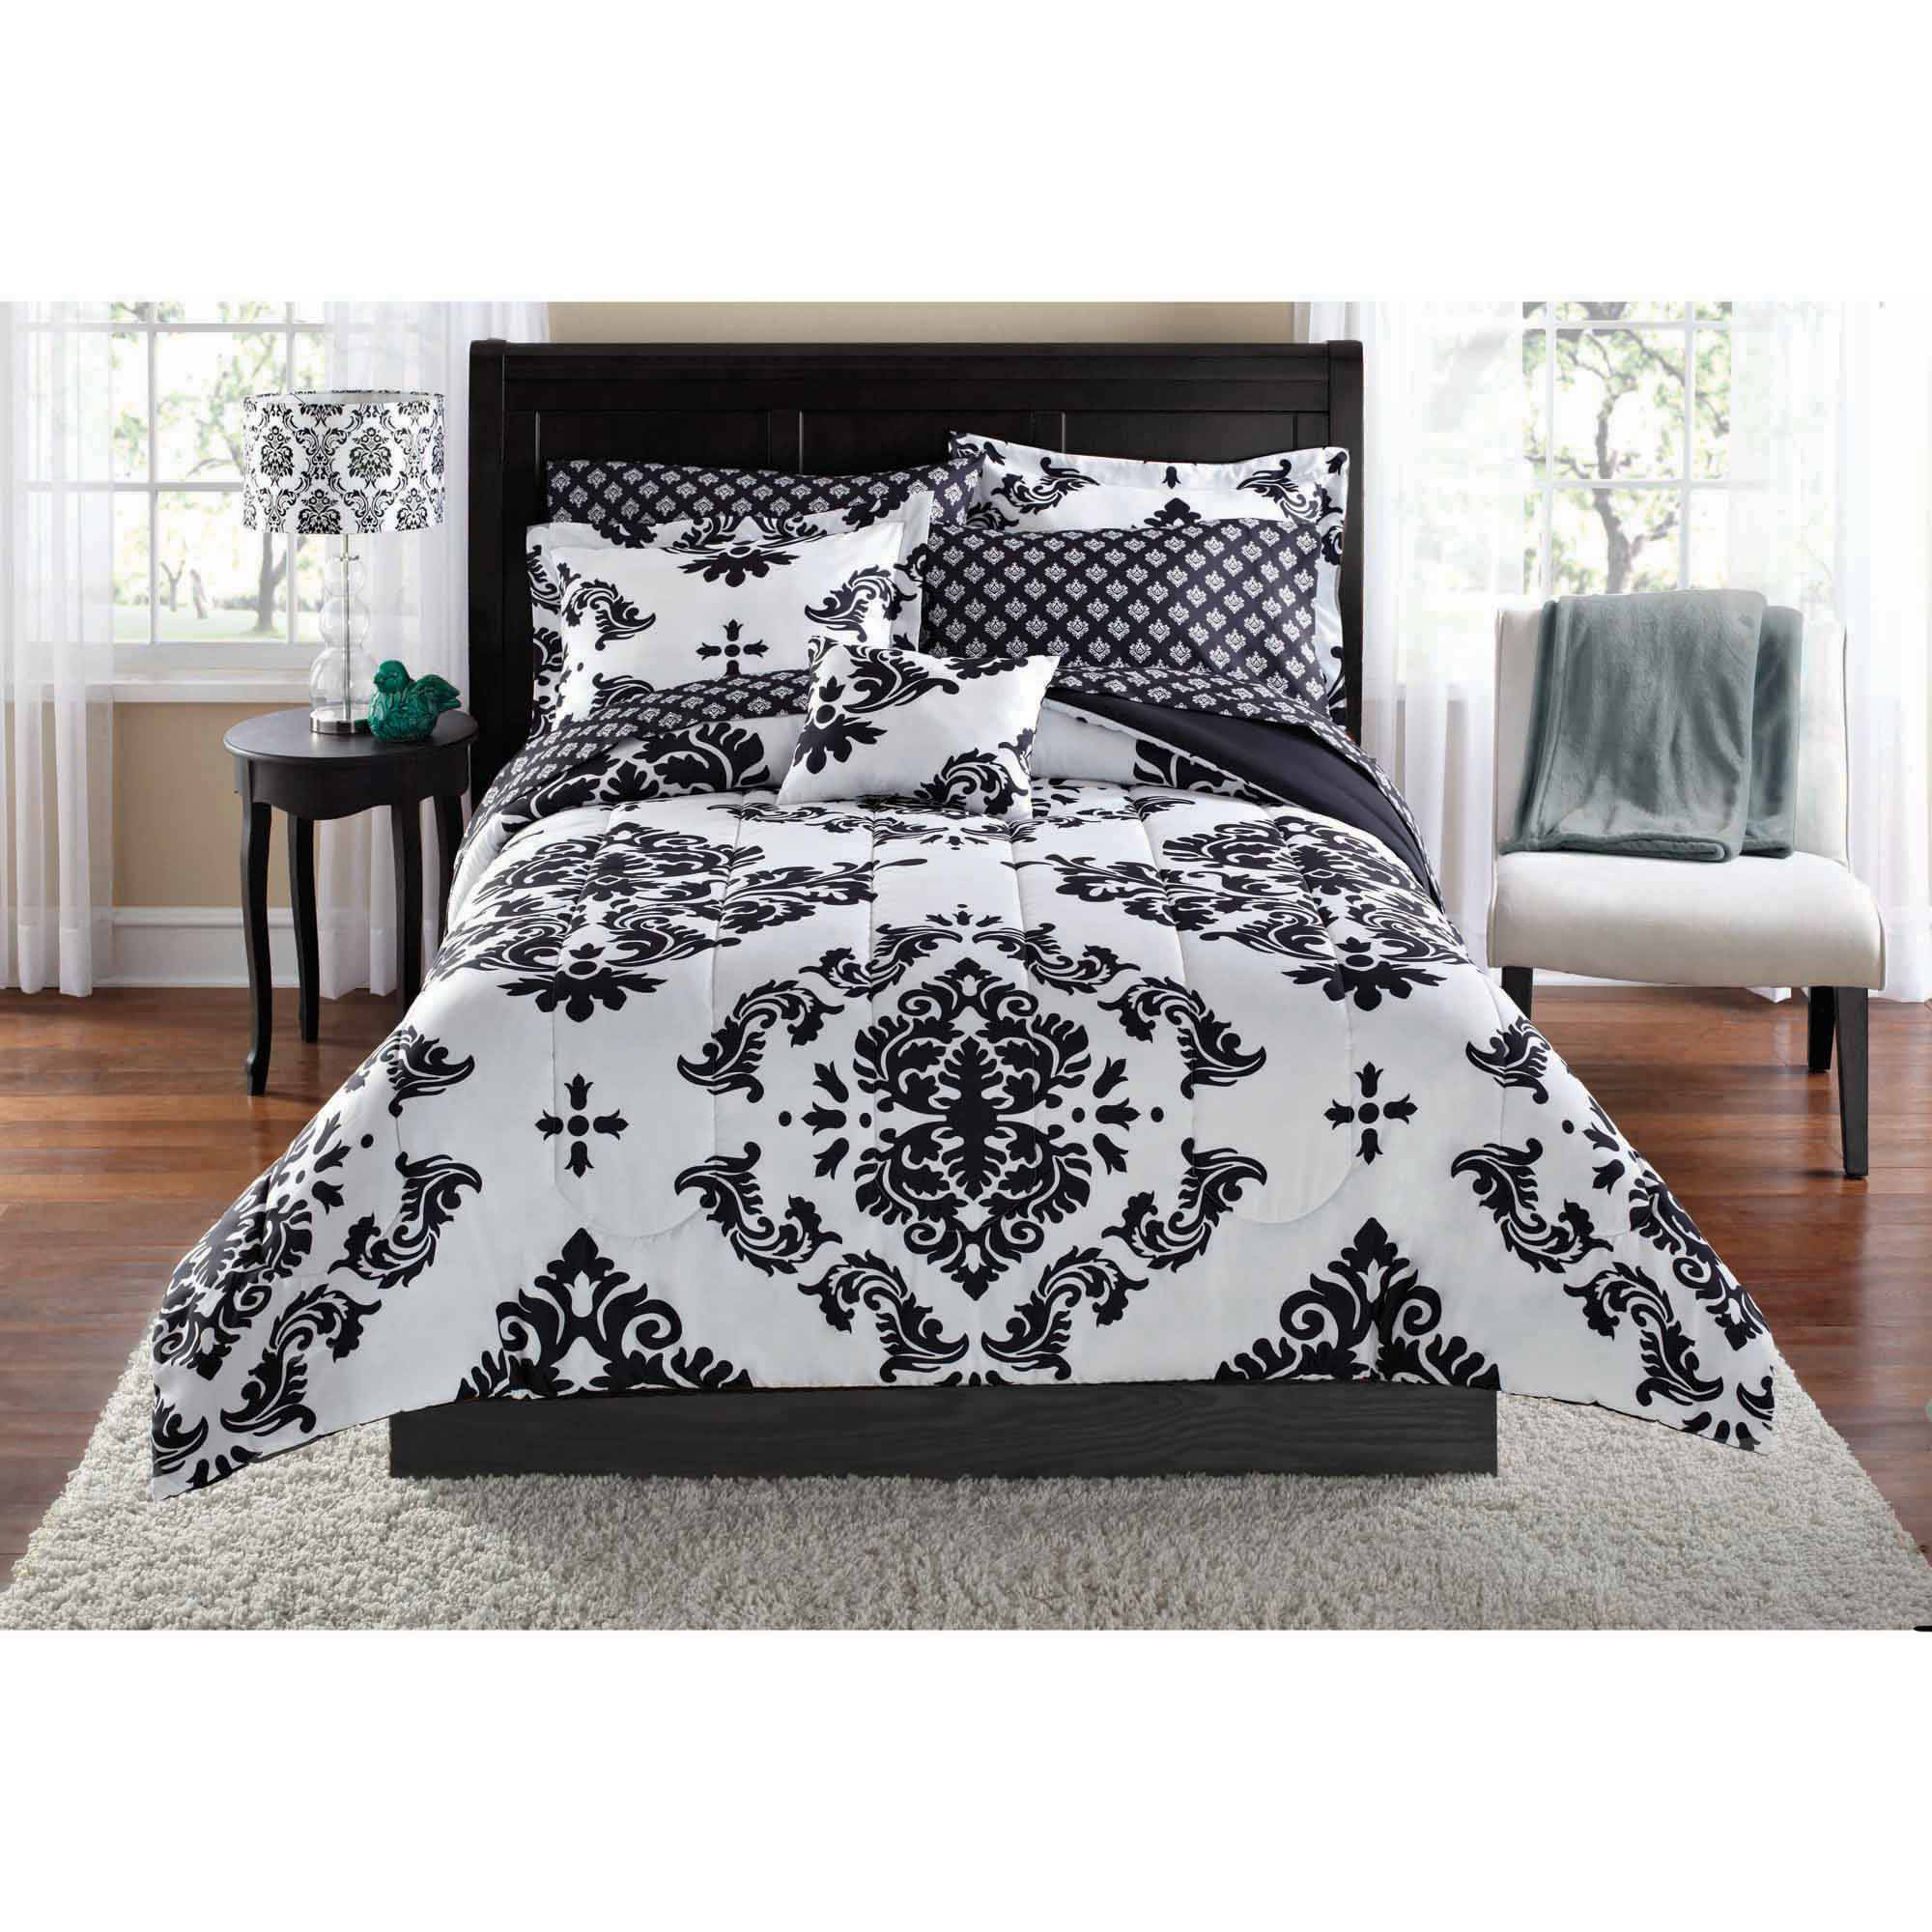 Mainstays Classic Noir Bed in a Bag Coordinating Bedding Set